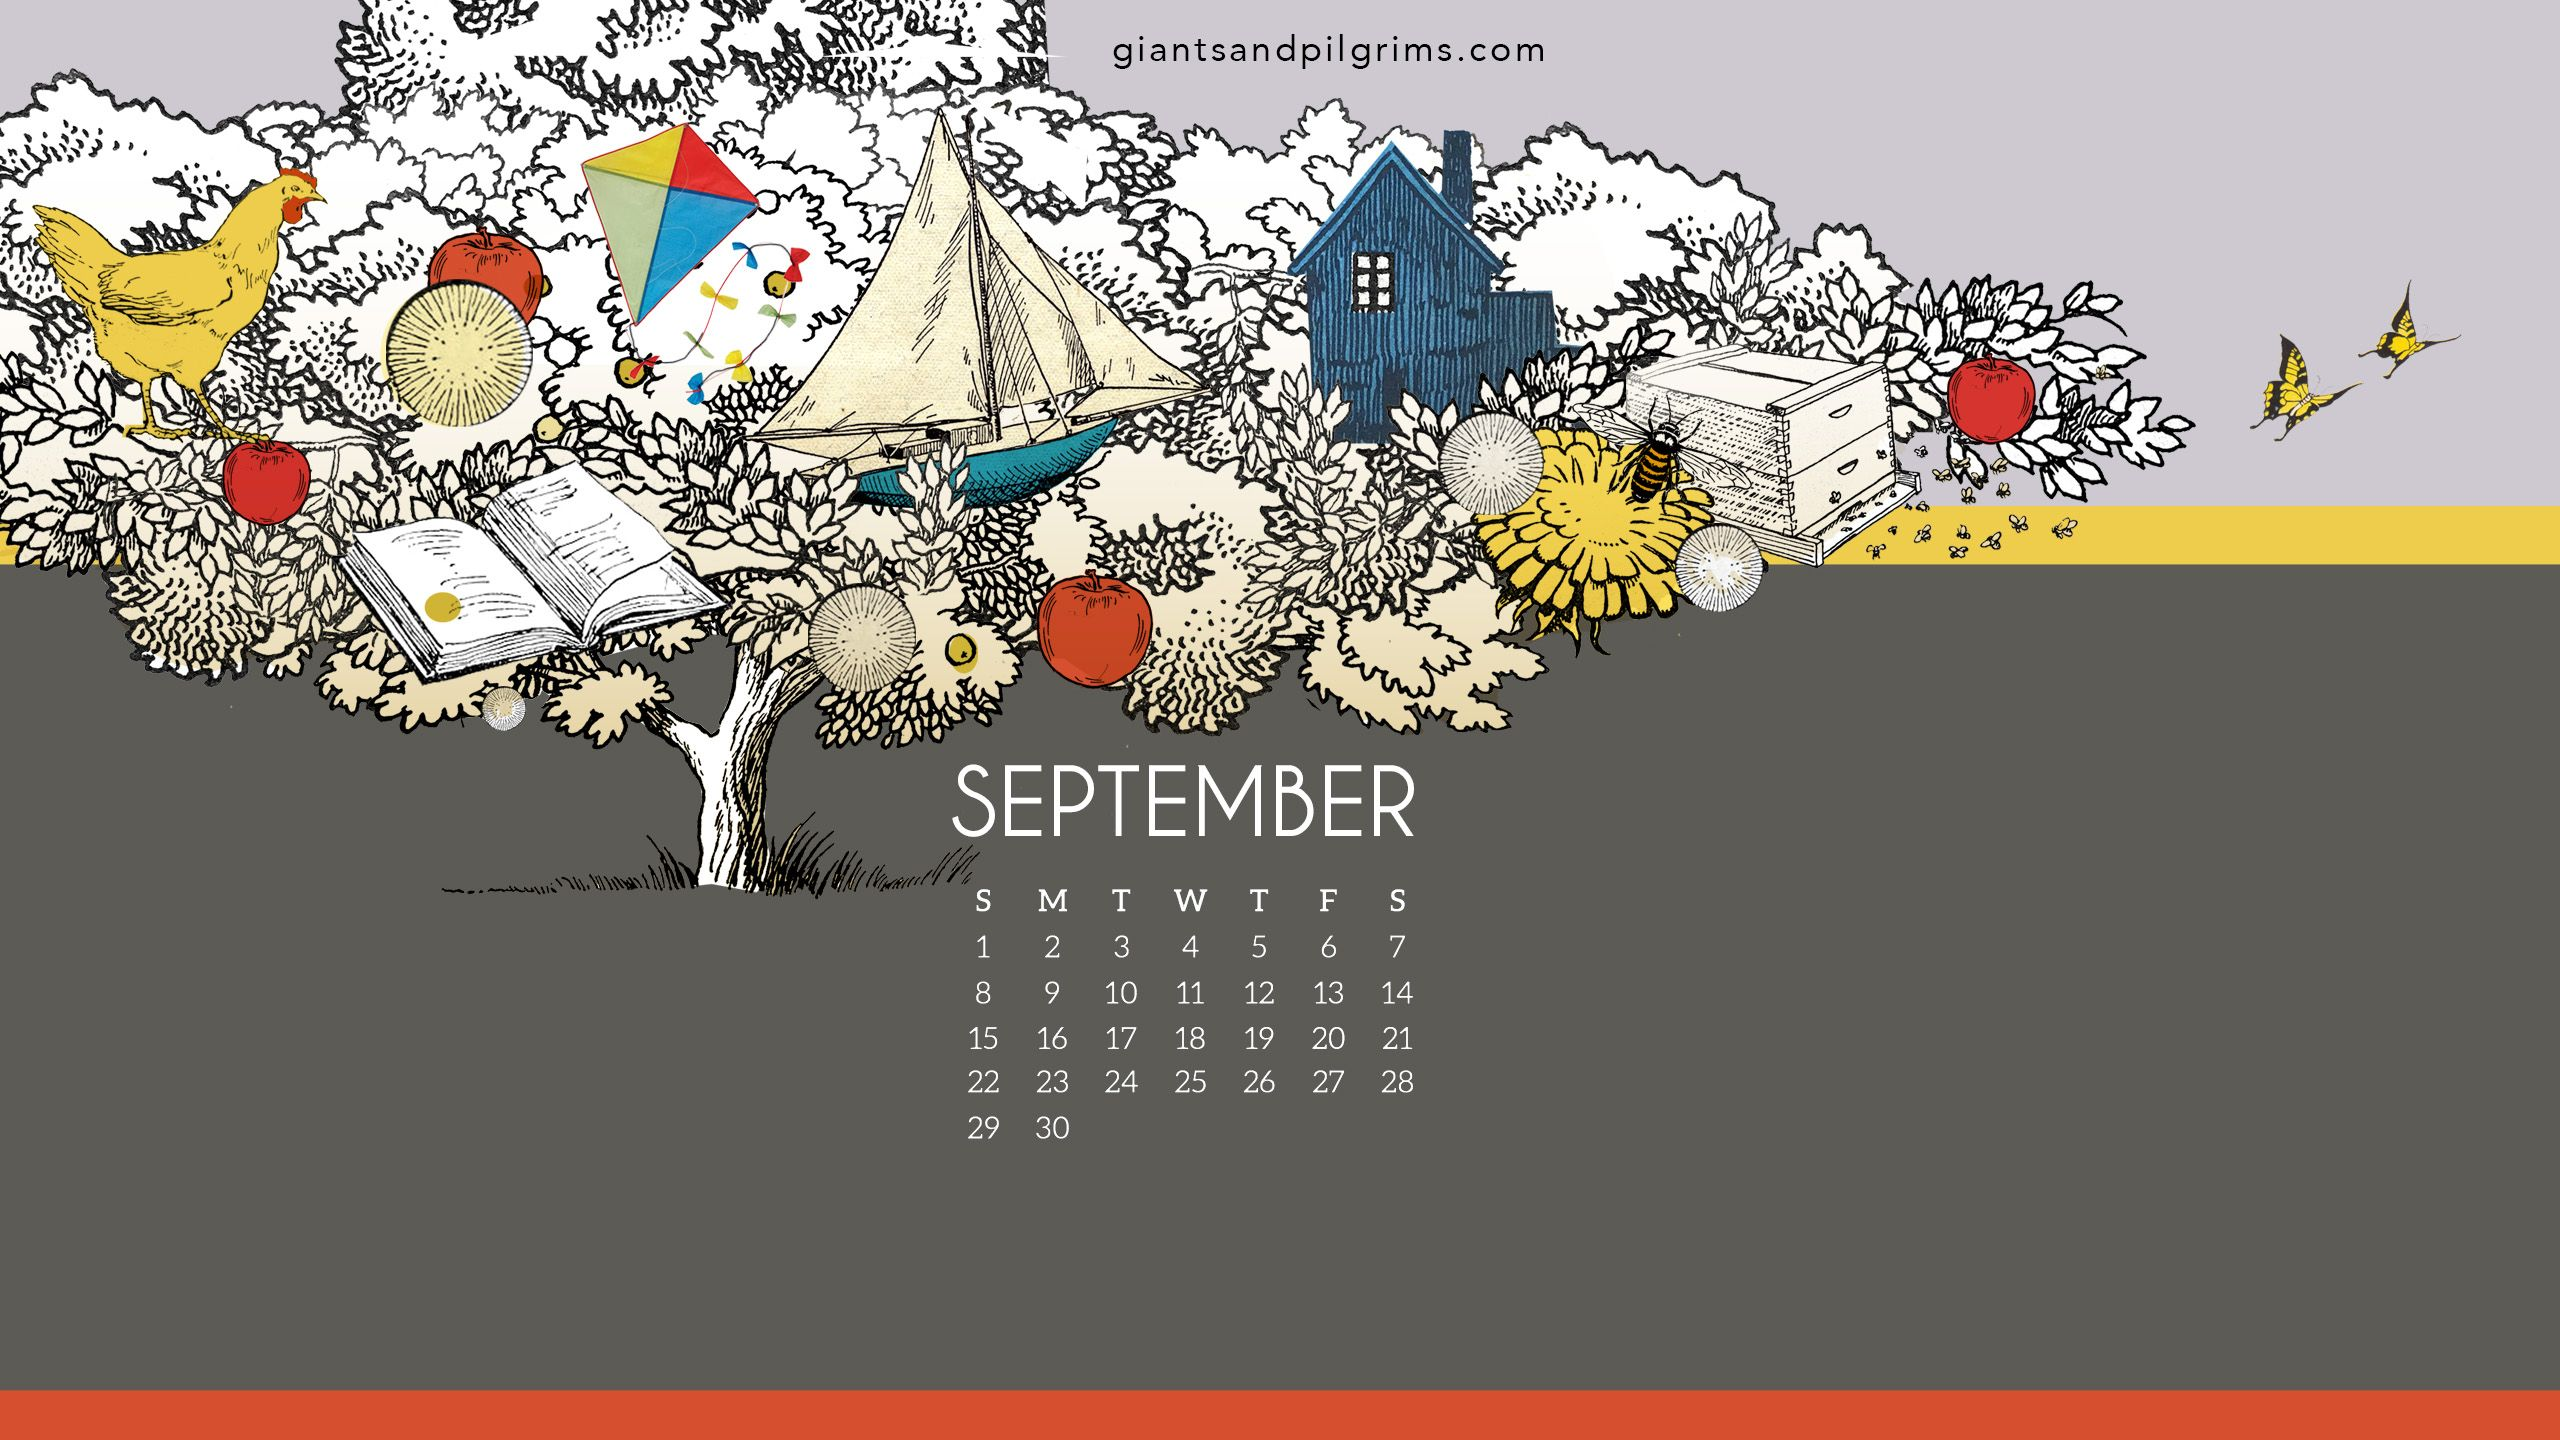 September 2019 Desktop Wallpaper Giants Pilgrims